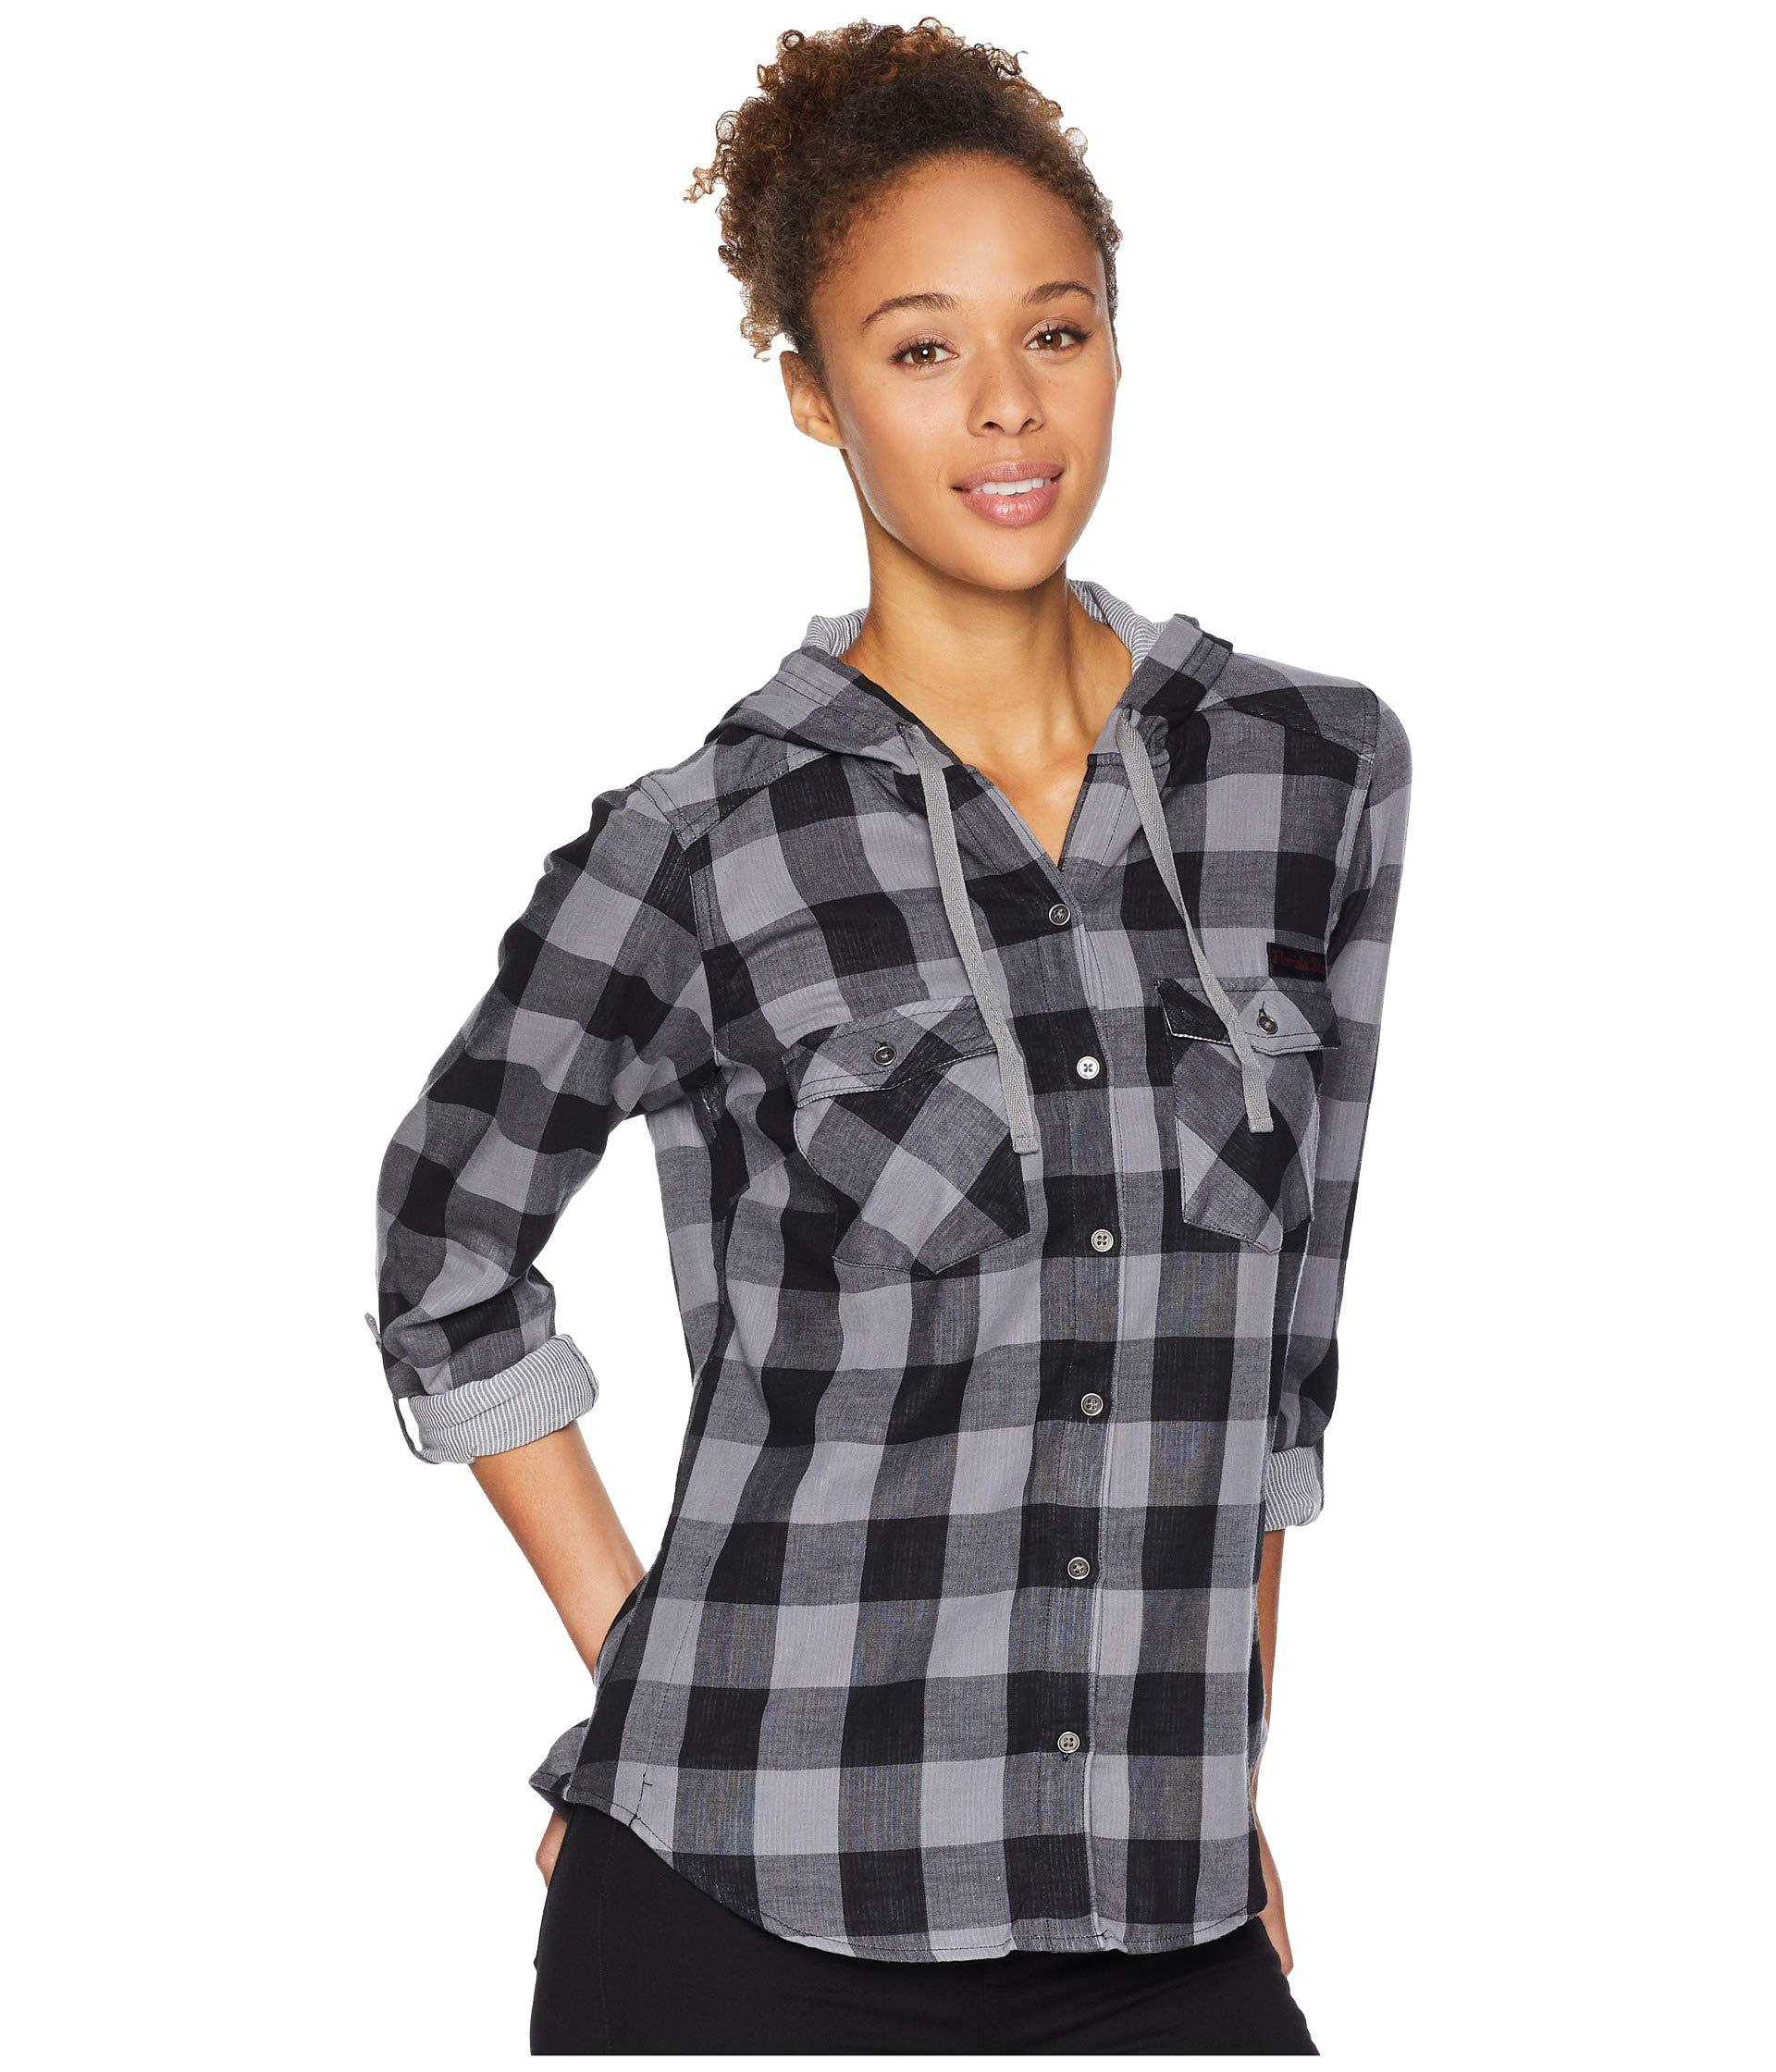 5aac72cea94 Womens Checked Hooded Shirts - BCD Tofu House